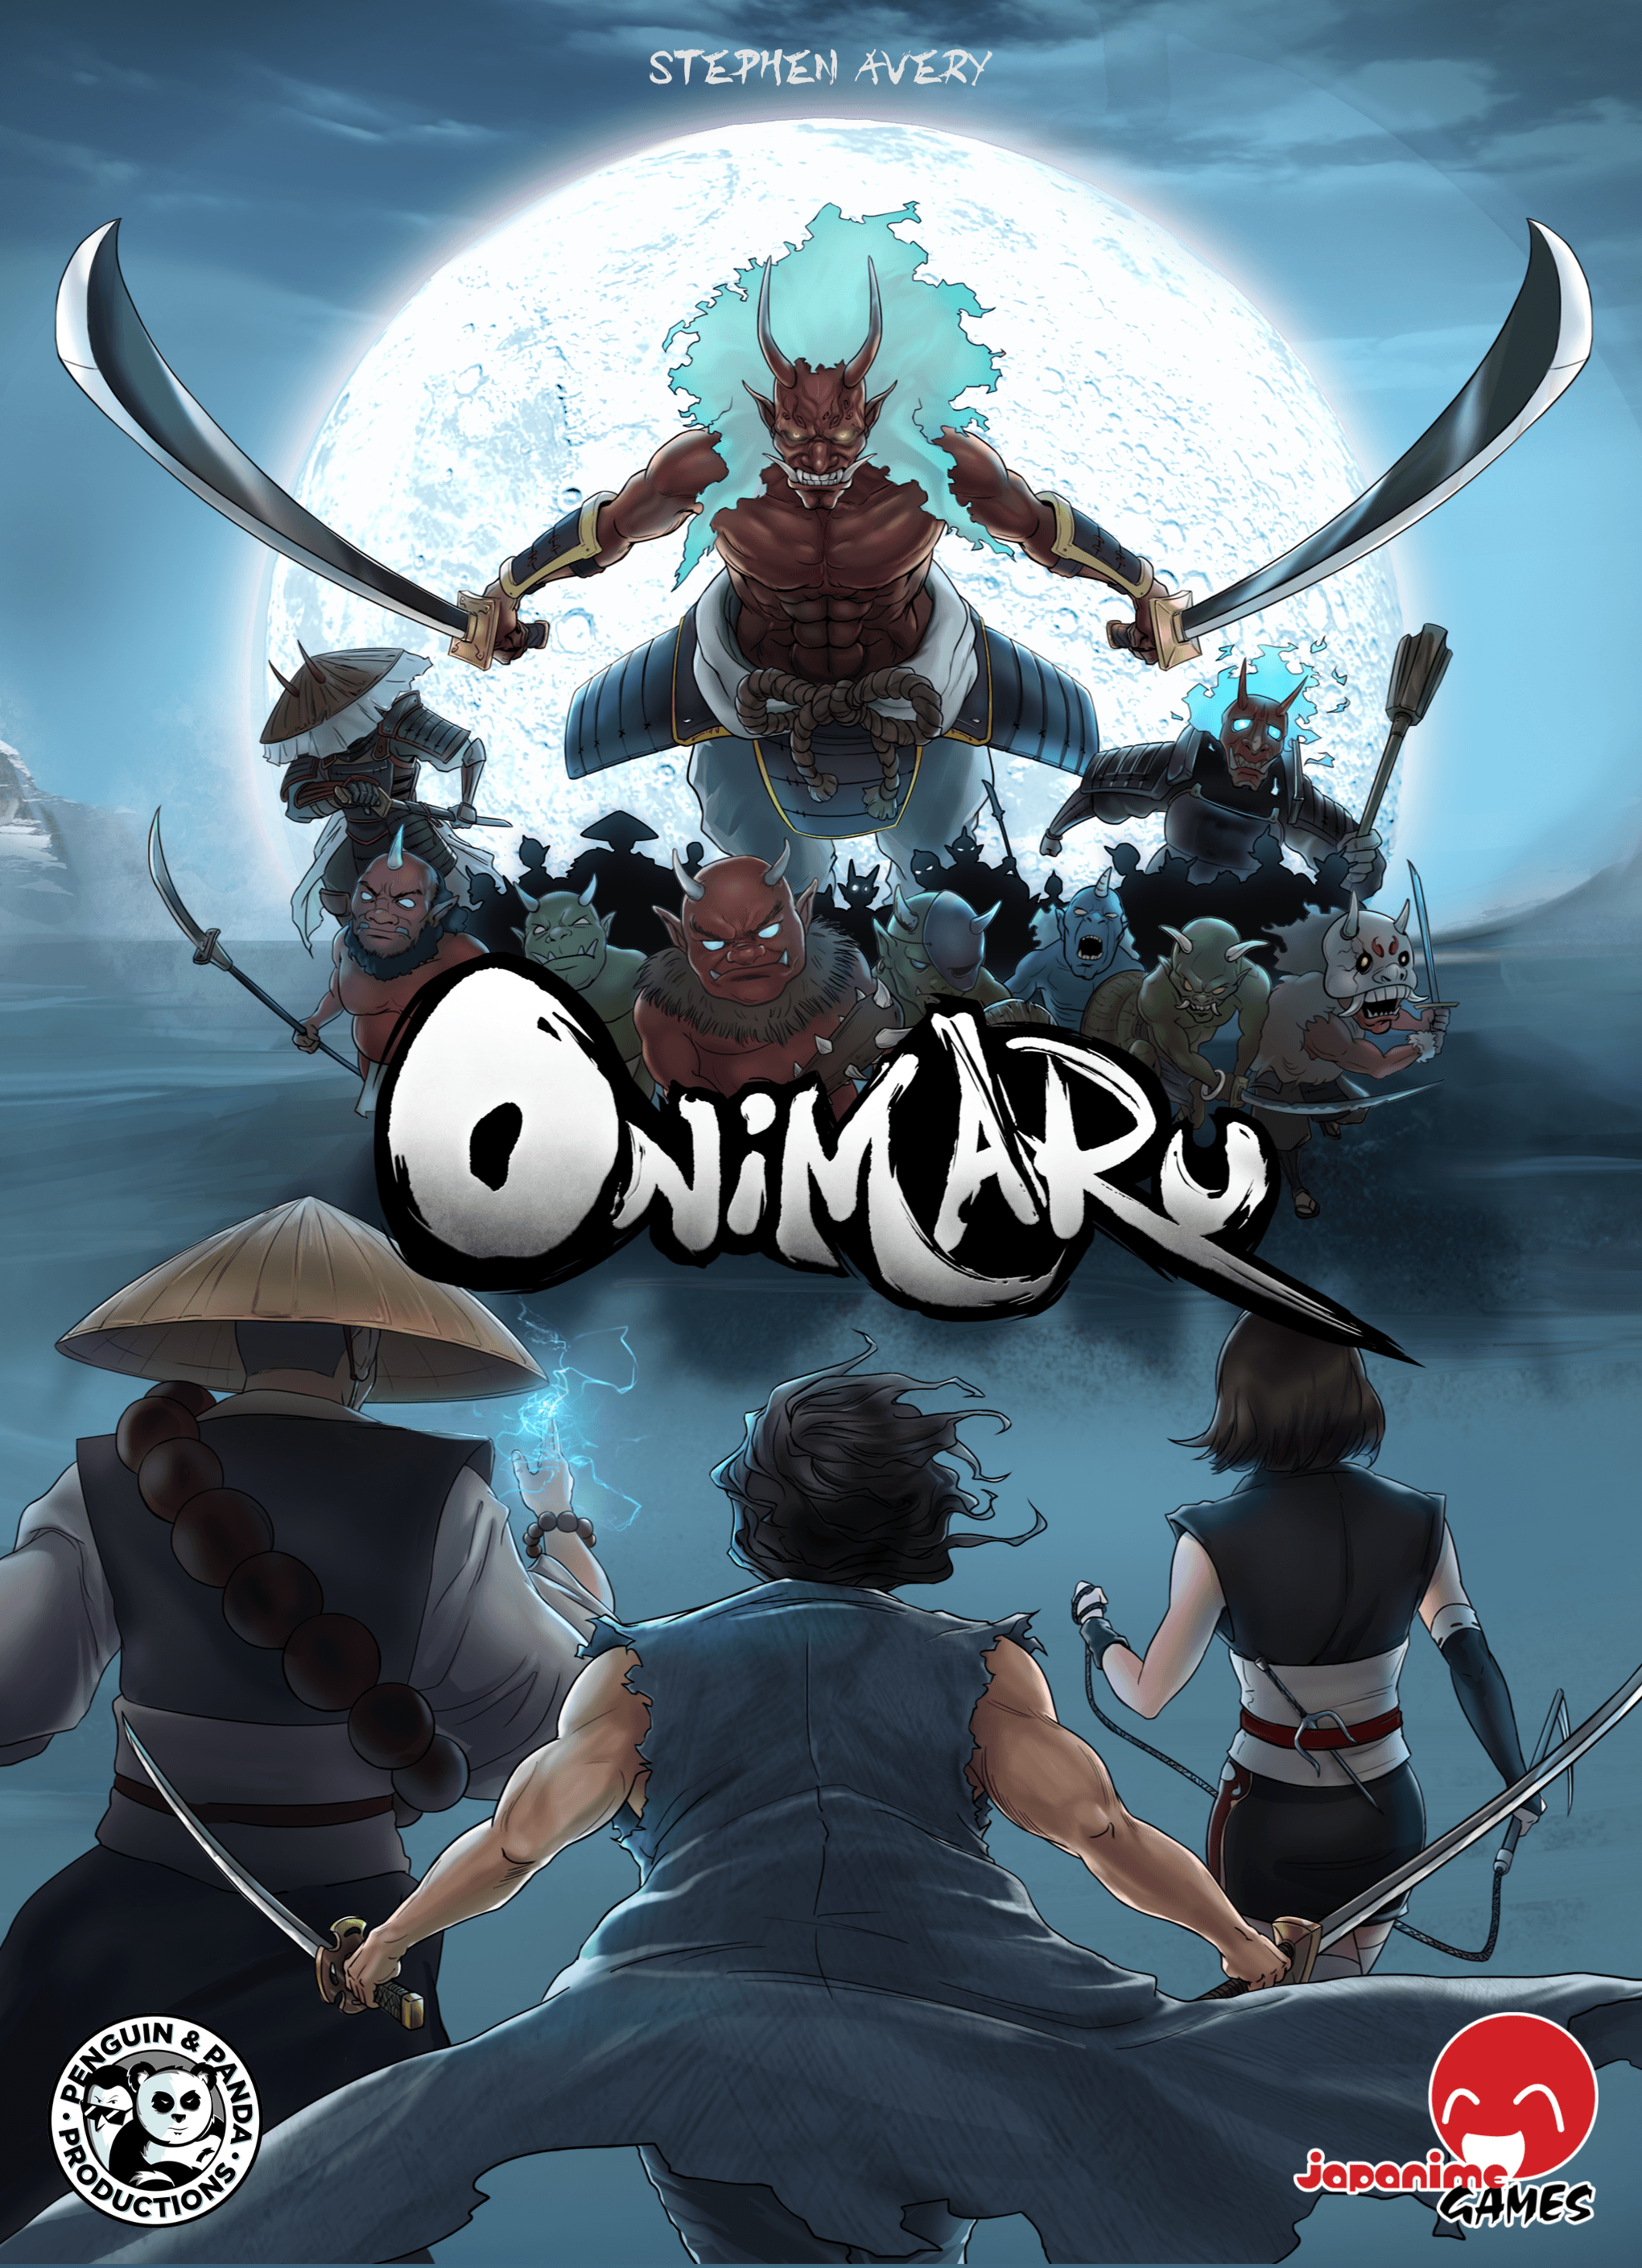 Main image for Onimaru